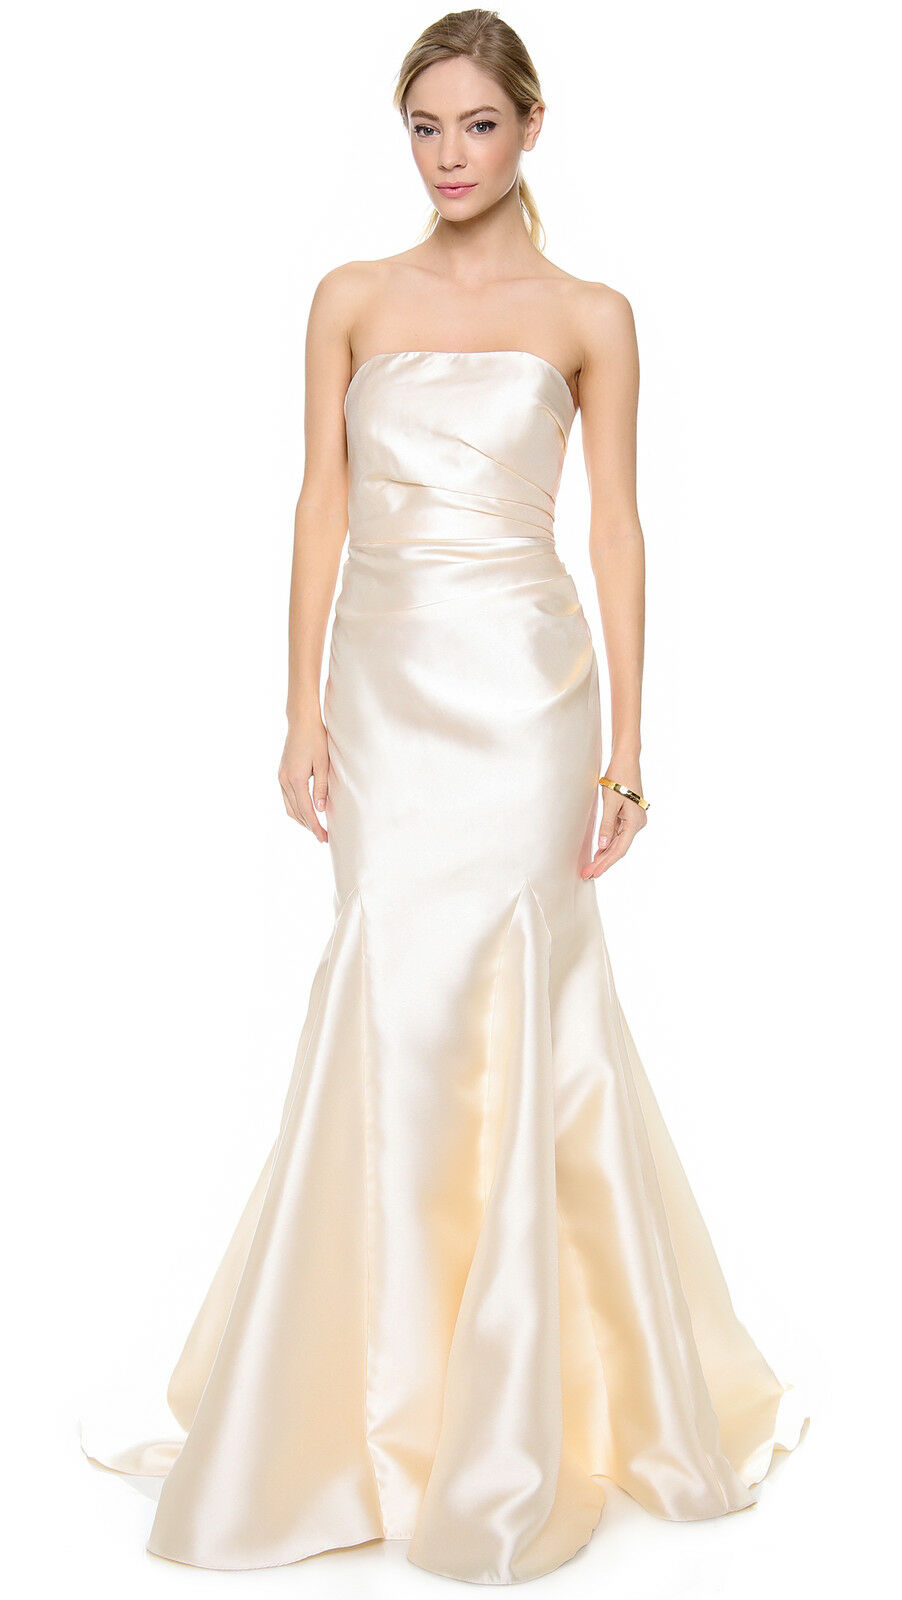 NWT Badgley Mischka Ivory Exposed Side Zip Strapless Ruched Dress Gown 4  695